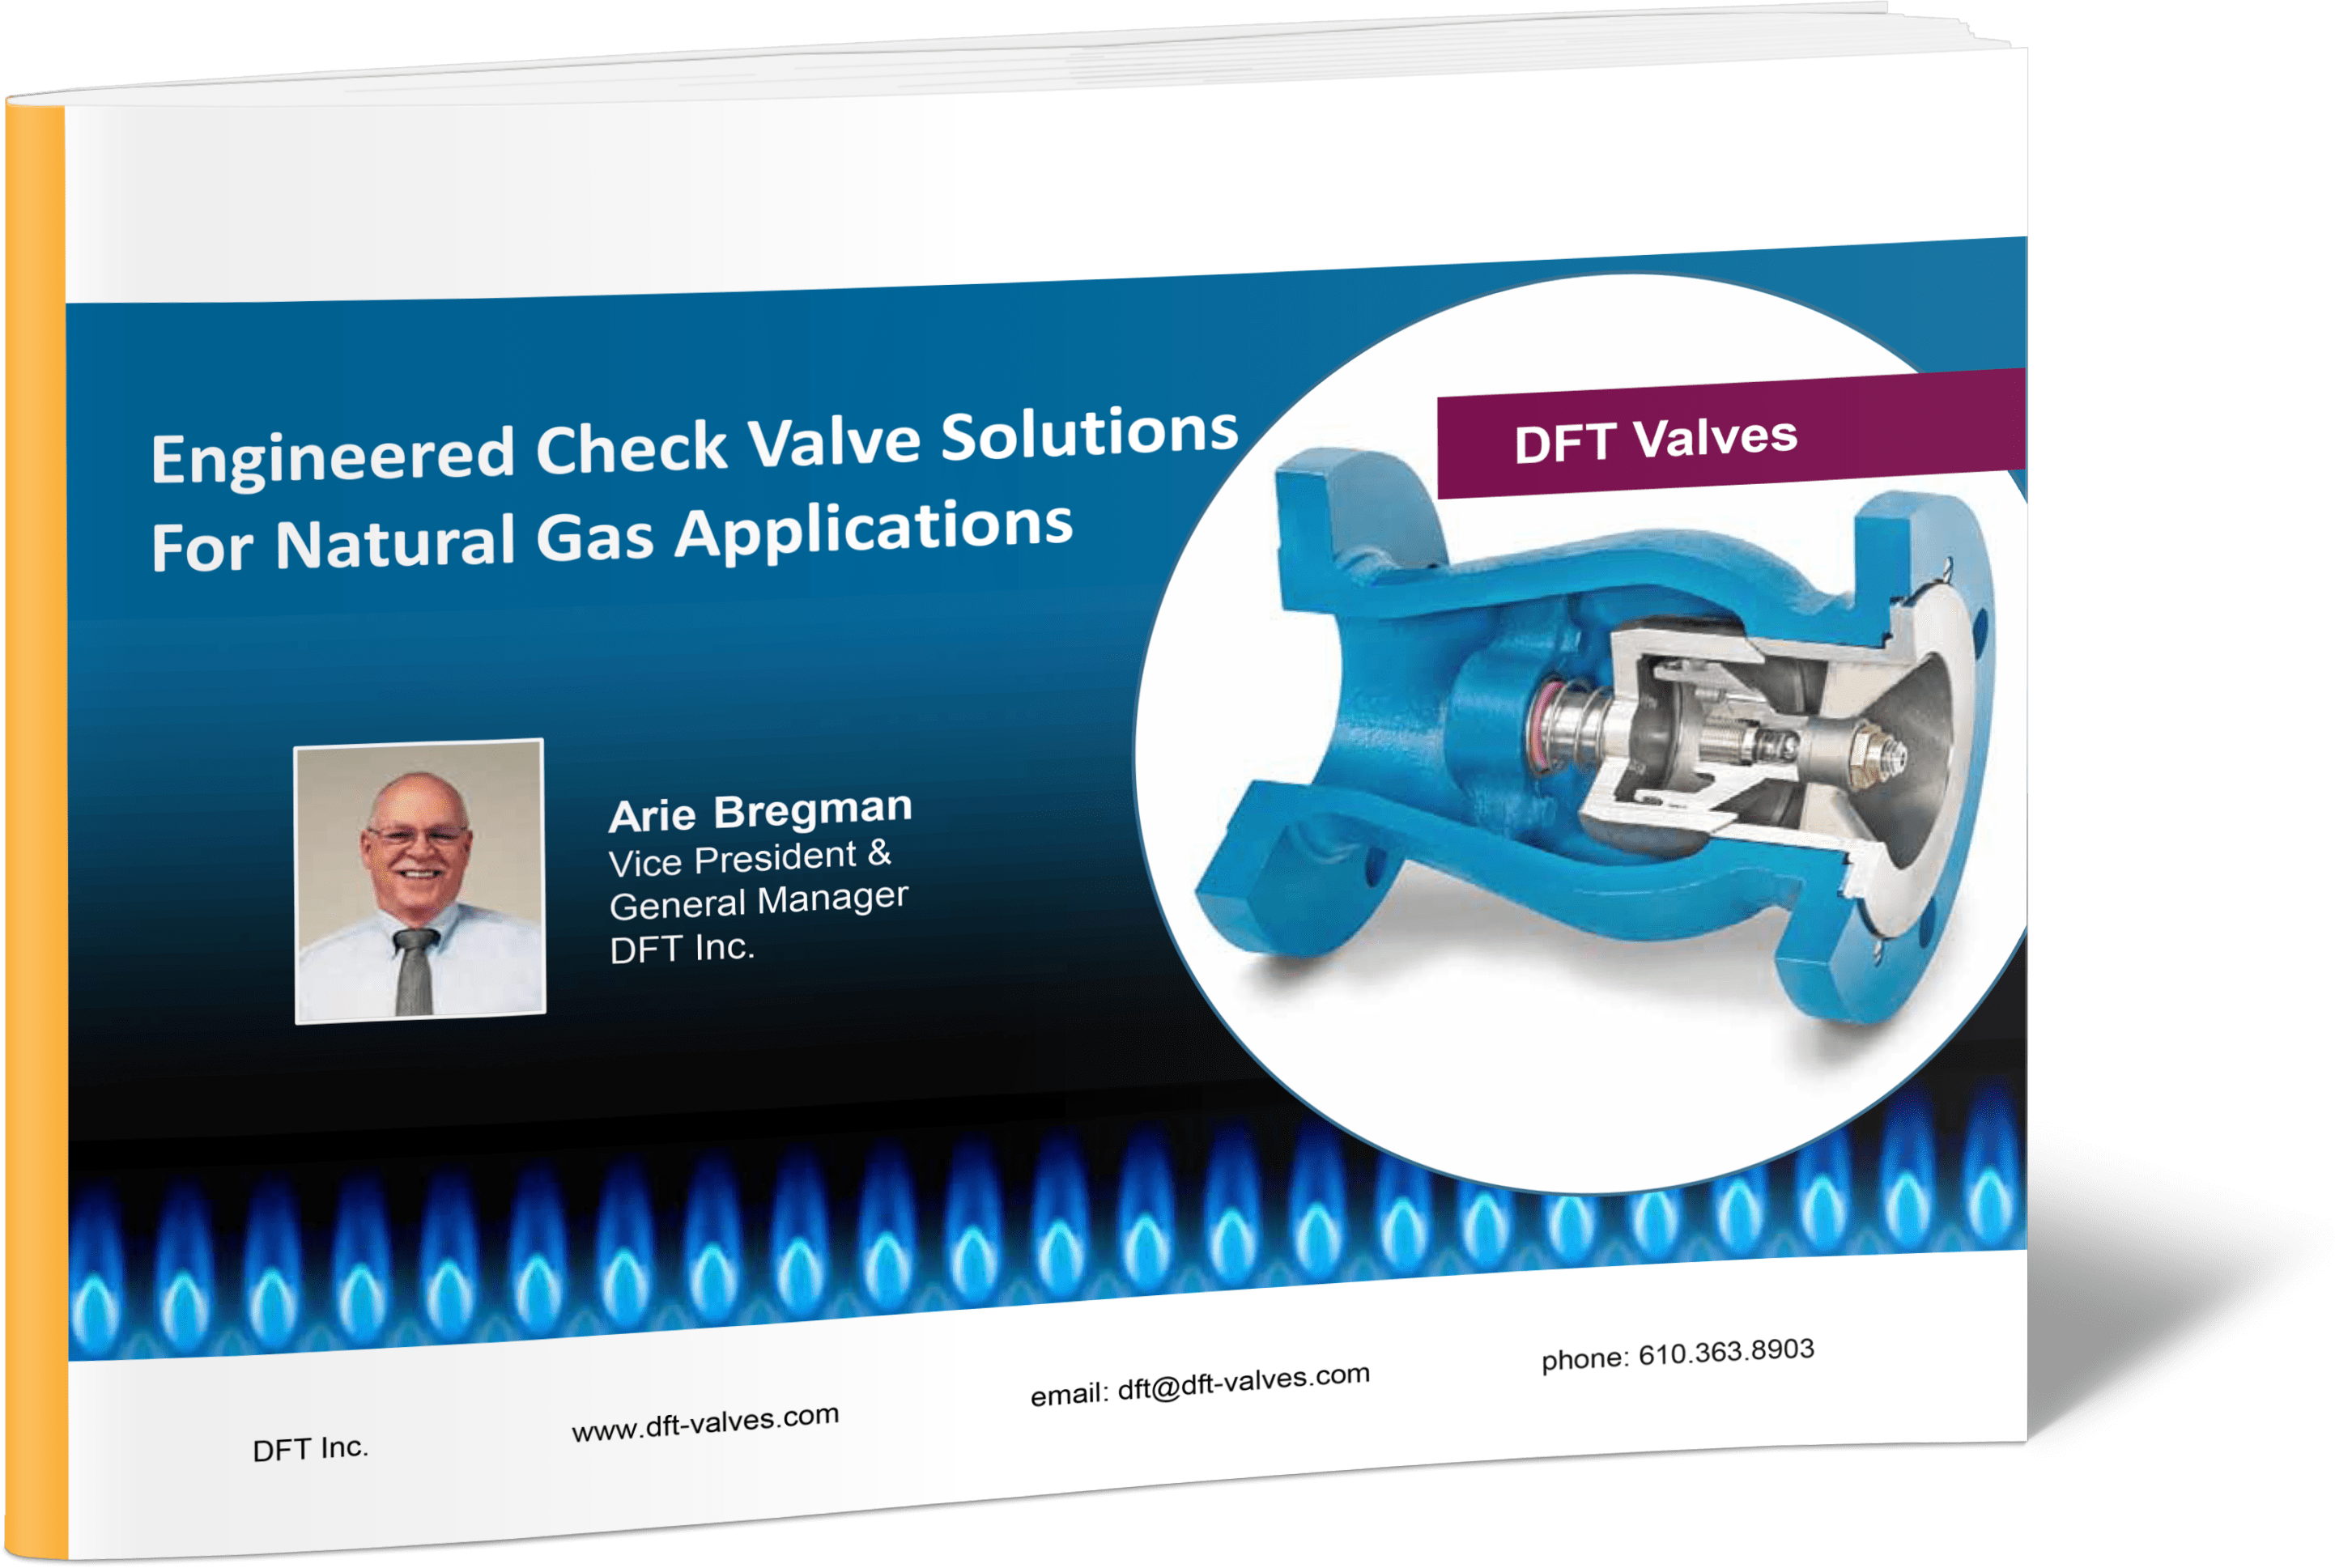 Engineered Check Valve Solutions For Natural Gas Applications Webinar Deck